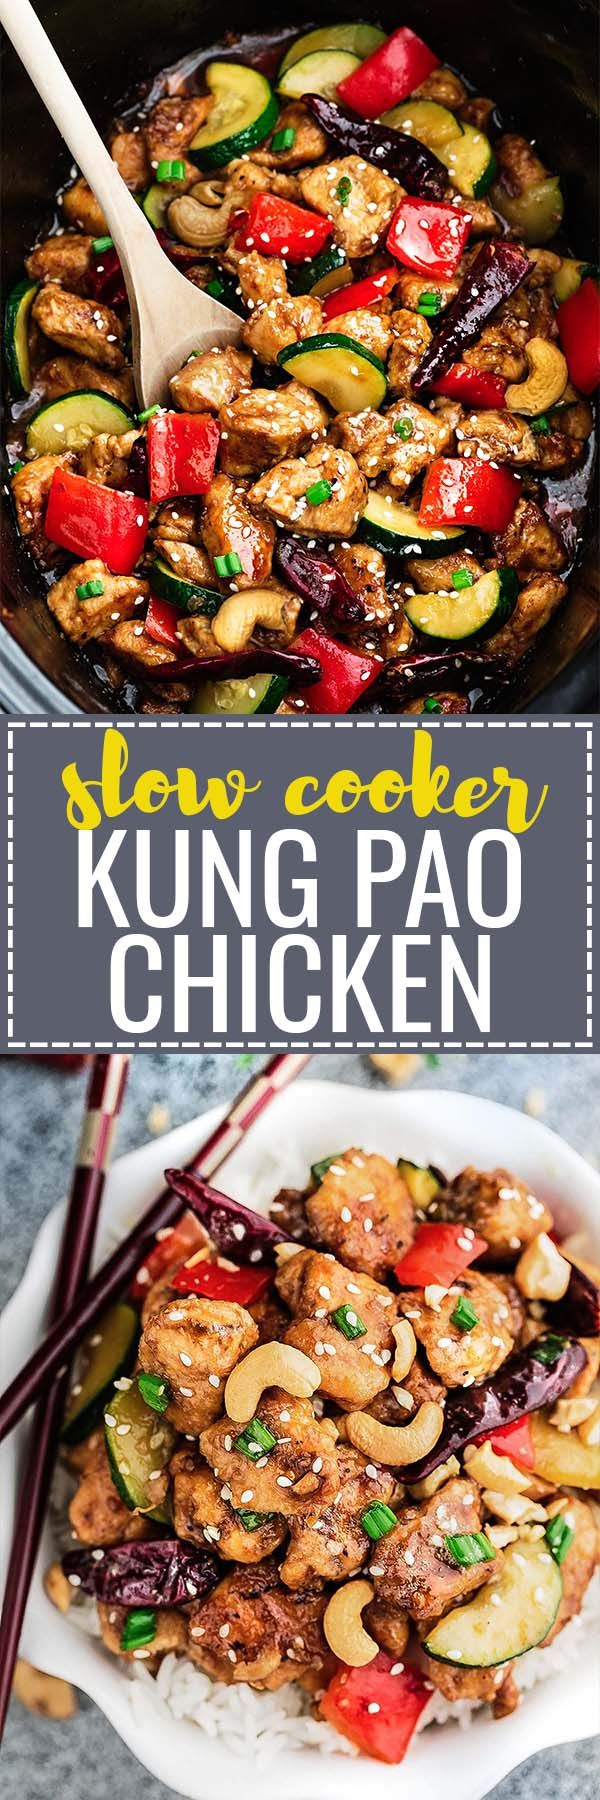 Healthier Slow Cooker Kung Pao Chicken makes the perfect easy and lightened up weeknight meal. Best of all, this takeout favorite, is SO much healthier and better than your local restaurant with just a few minutes of prep time. With gluten free and paleo friendly options.